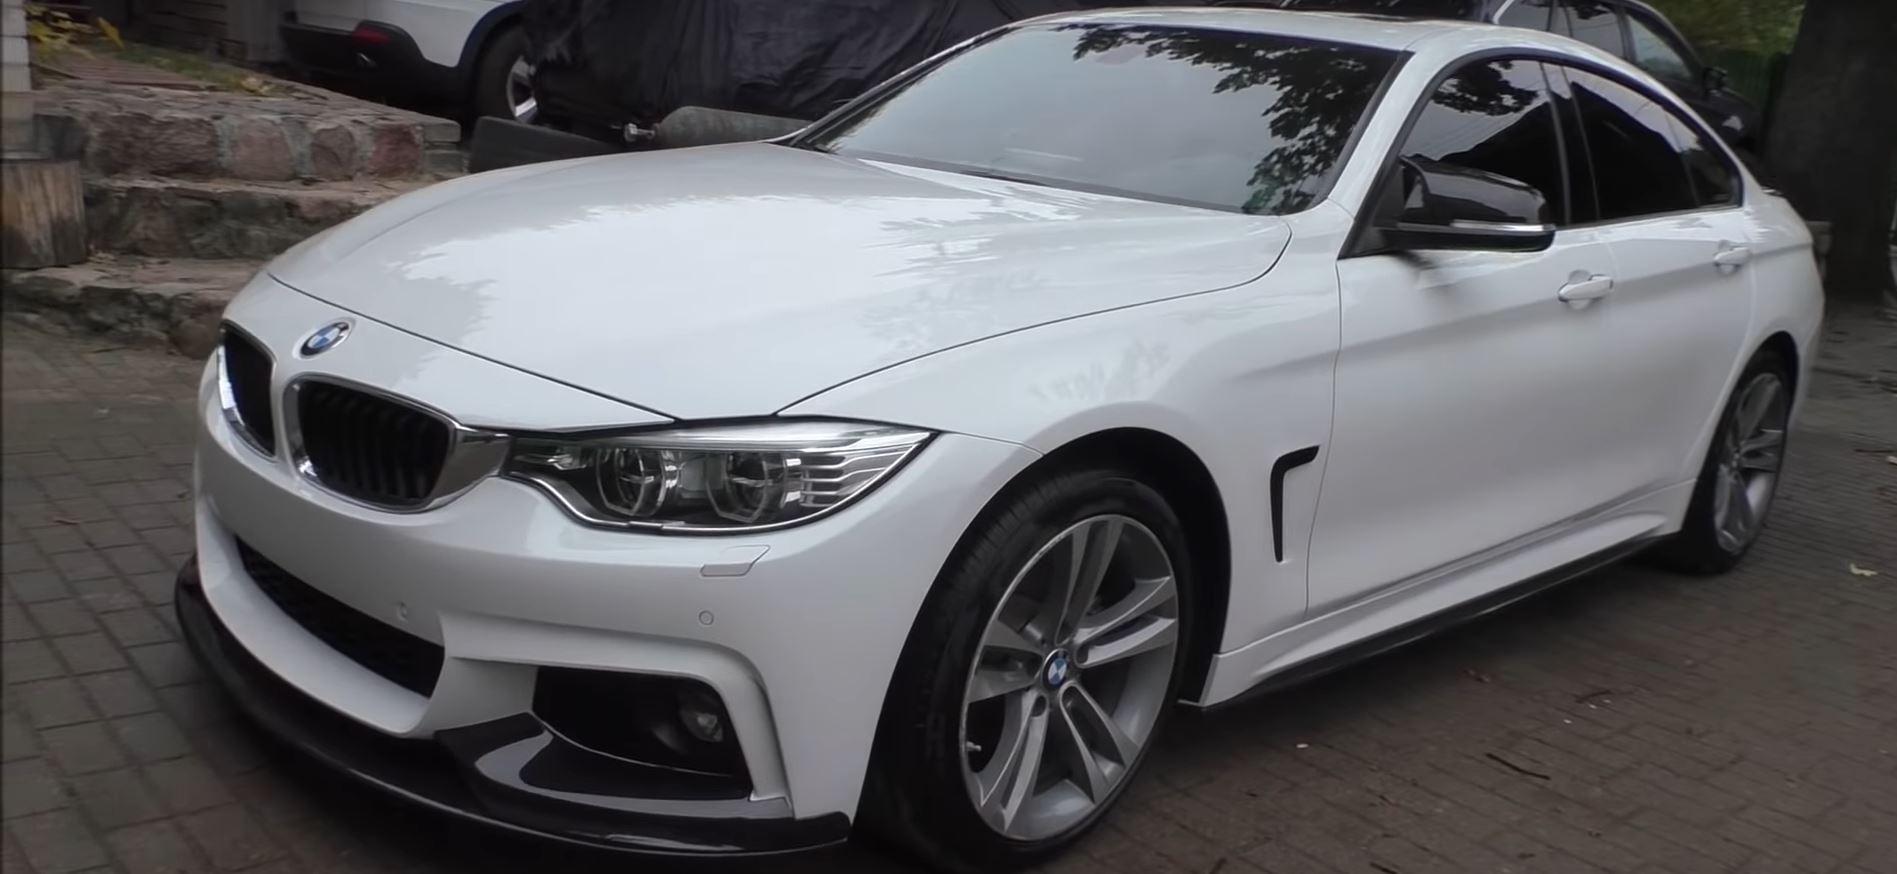 bmw 4 series gran coupe crash repair is mesmerizing autoevolution. Black Bedroom Furniture Sets. Home Design Ideas